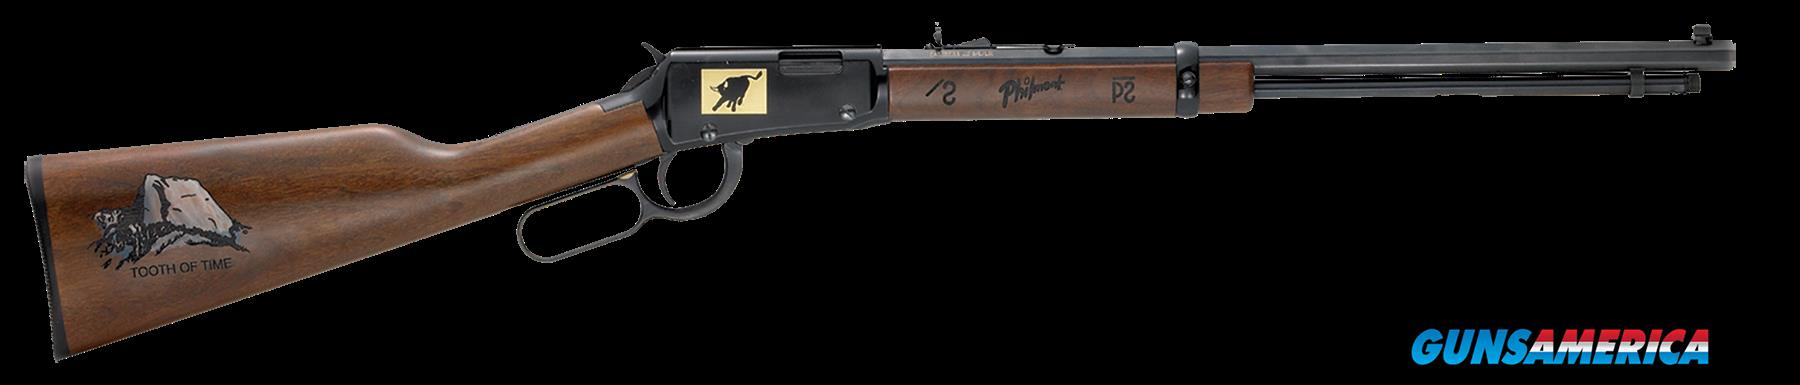 "Henry H001TPM Lever Special Edition Philmont Scout Ranch Rifle Lever 22 Short/Long/Long Rifle 20"" 16  Guns > Rifles > Henry Rifle Company"